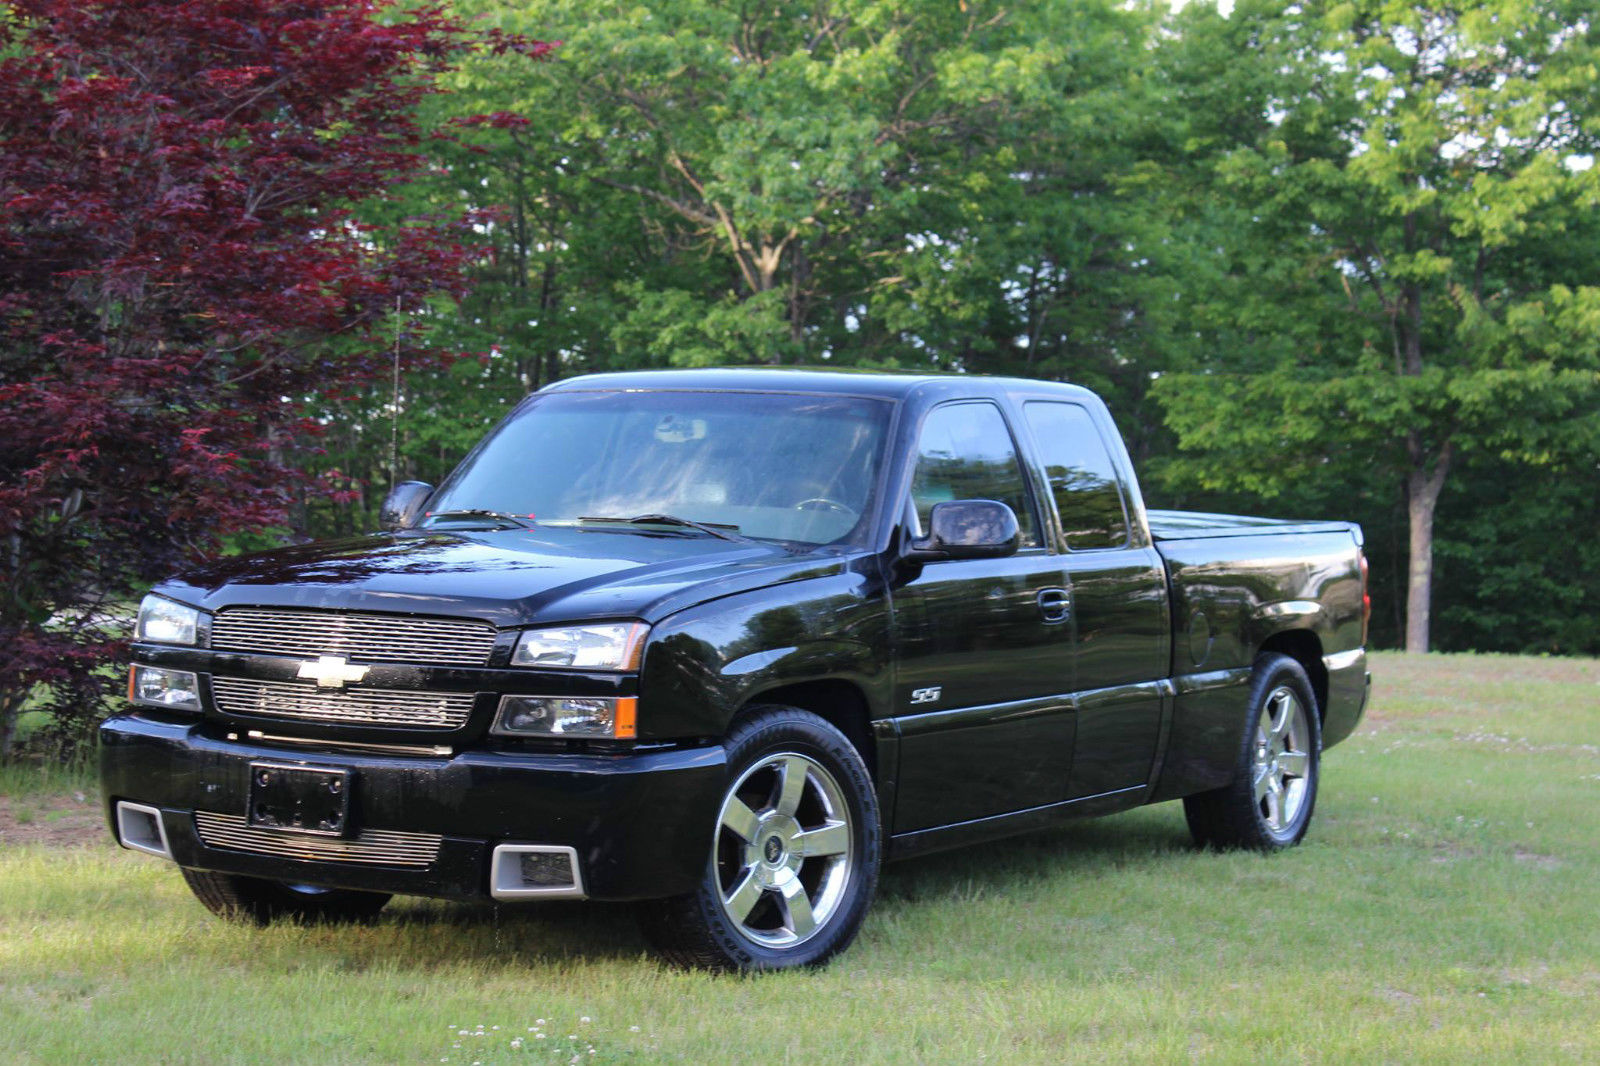 chevrolet silverado ss video search engine at. Black Bedroom Furniture Sets. Home Design Ideas